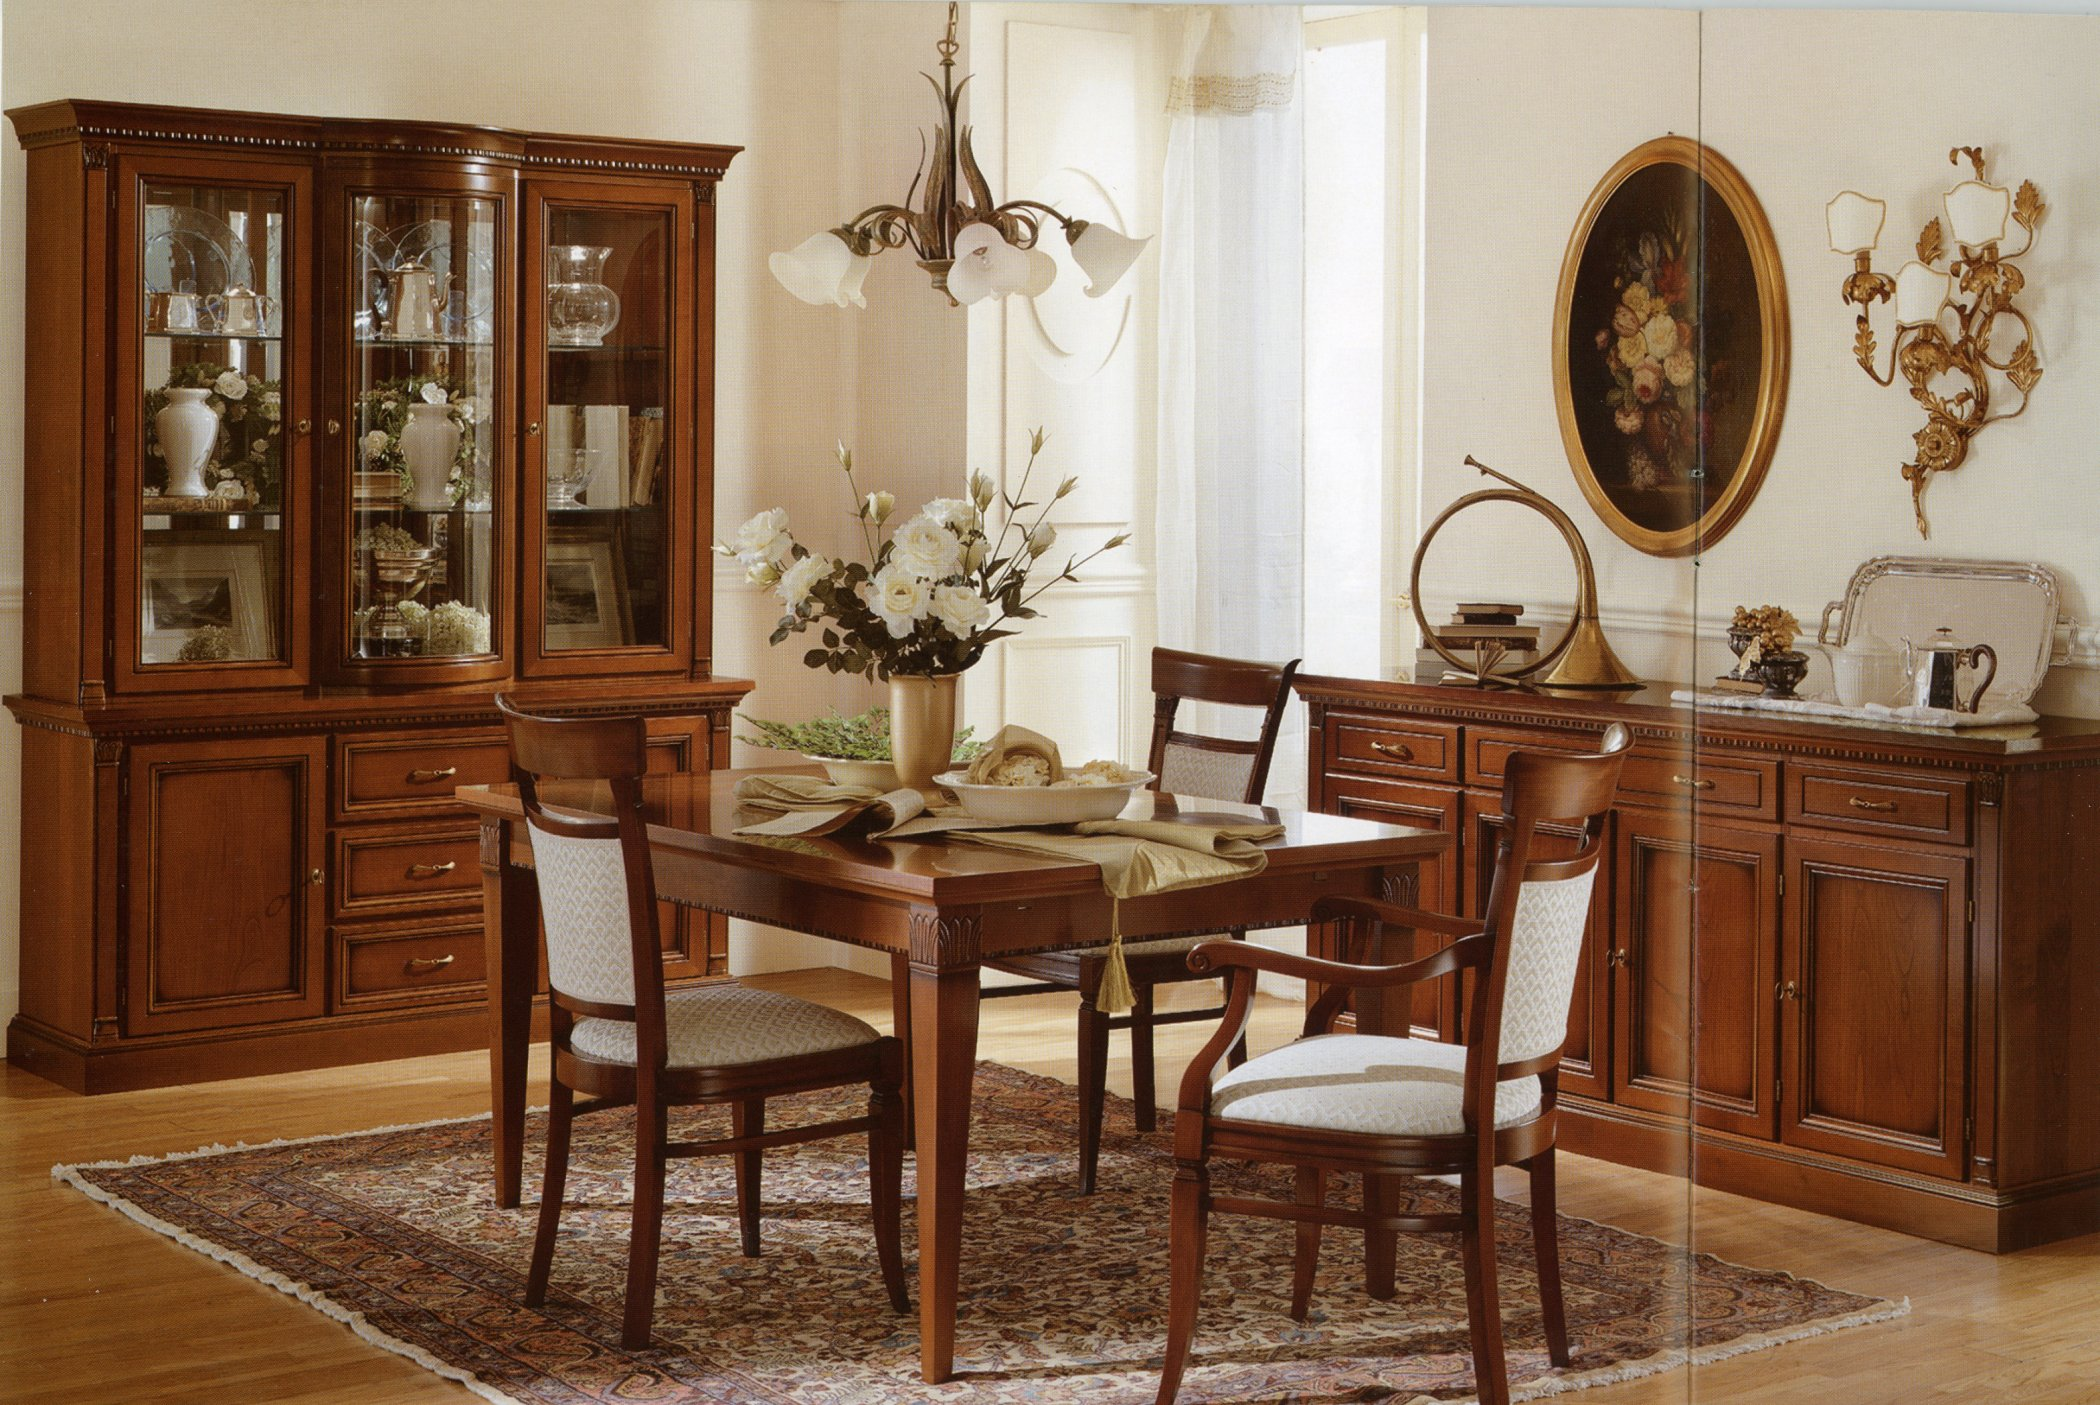 dining room furniture designs. Interior Furniture Design Ideas. Dining_room3 Ideas R Dining Room Designs